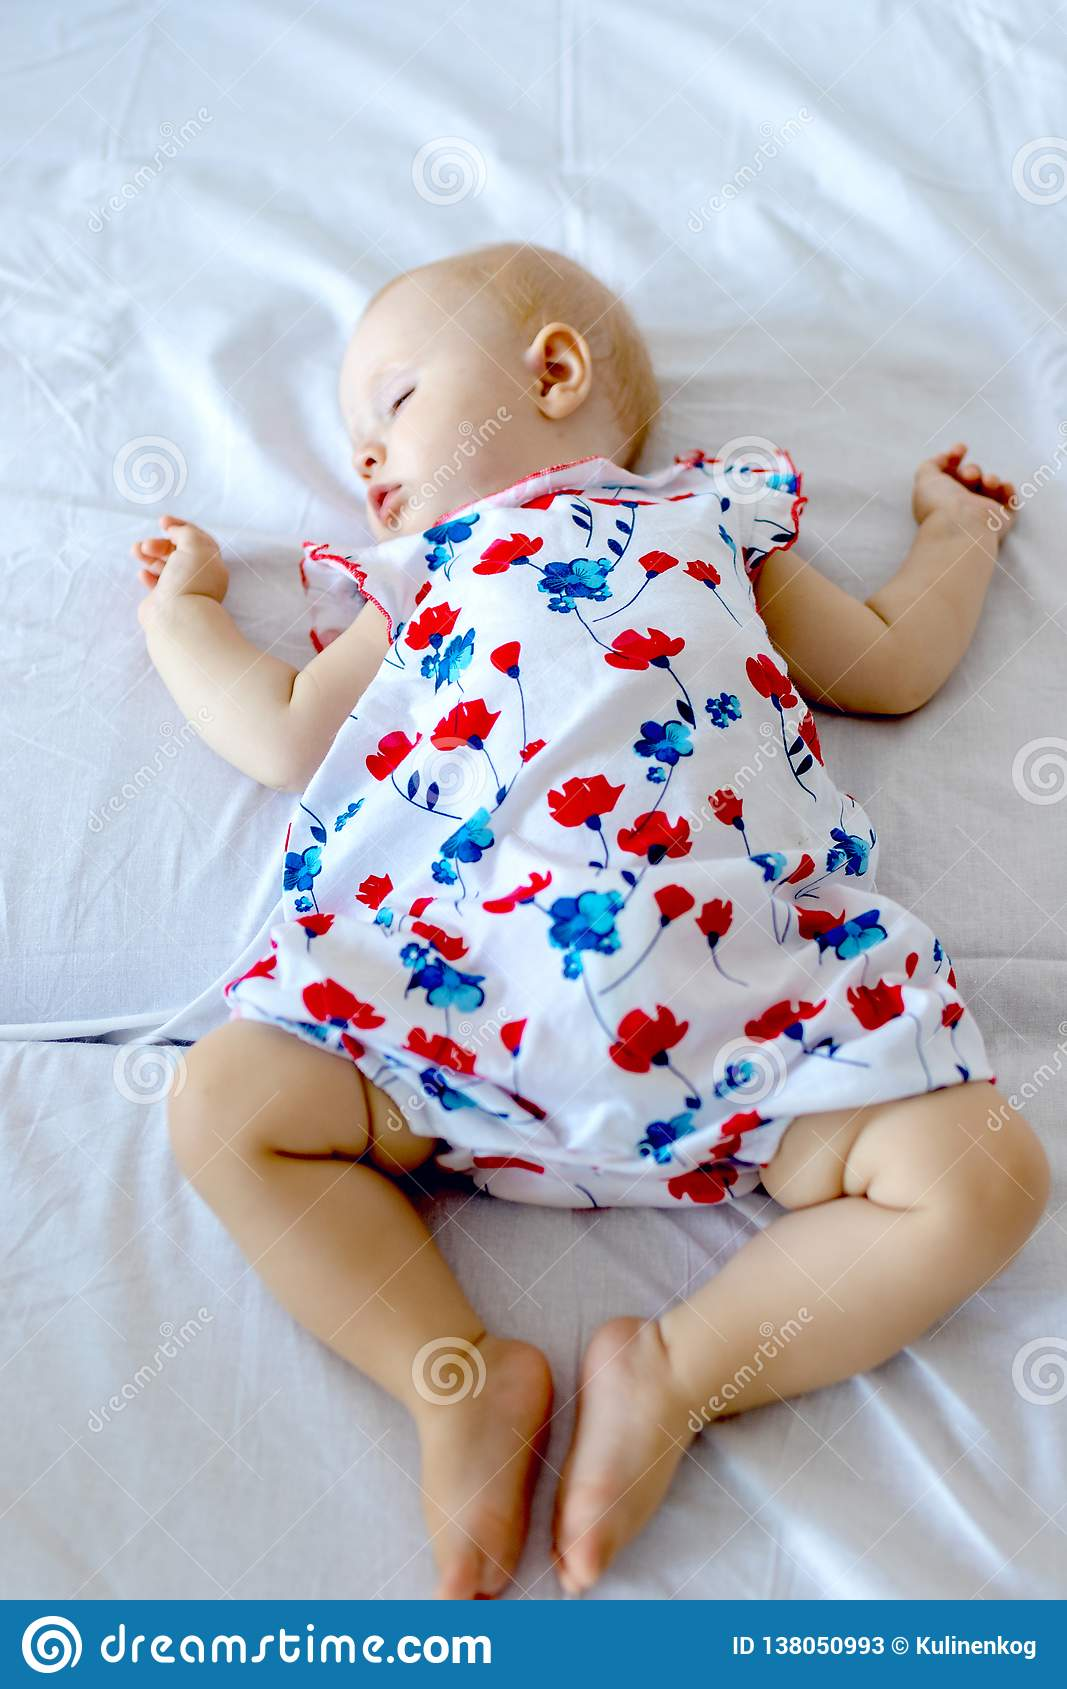 Peaceful newborn baby lying on a bed